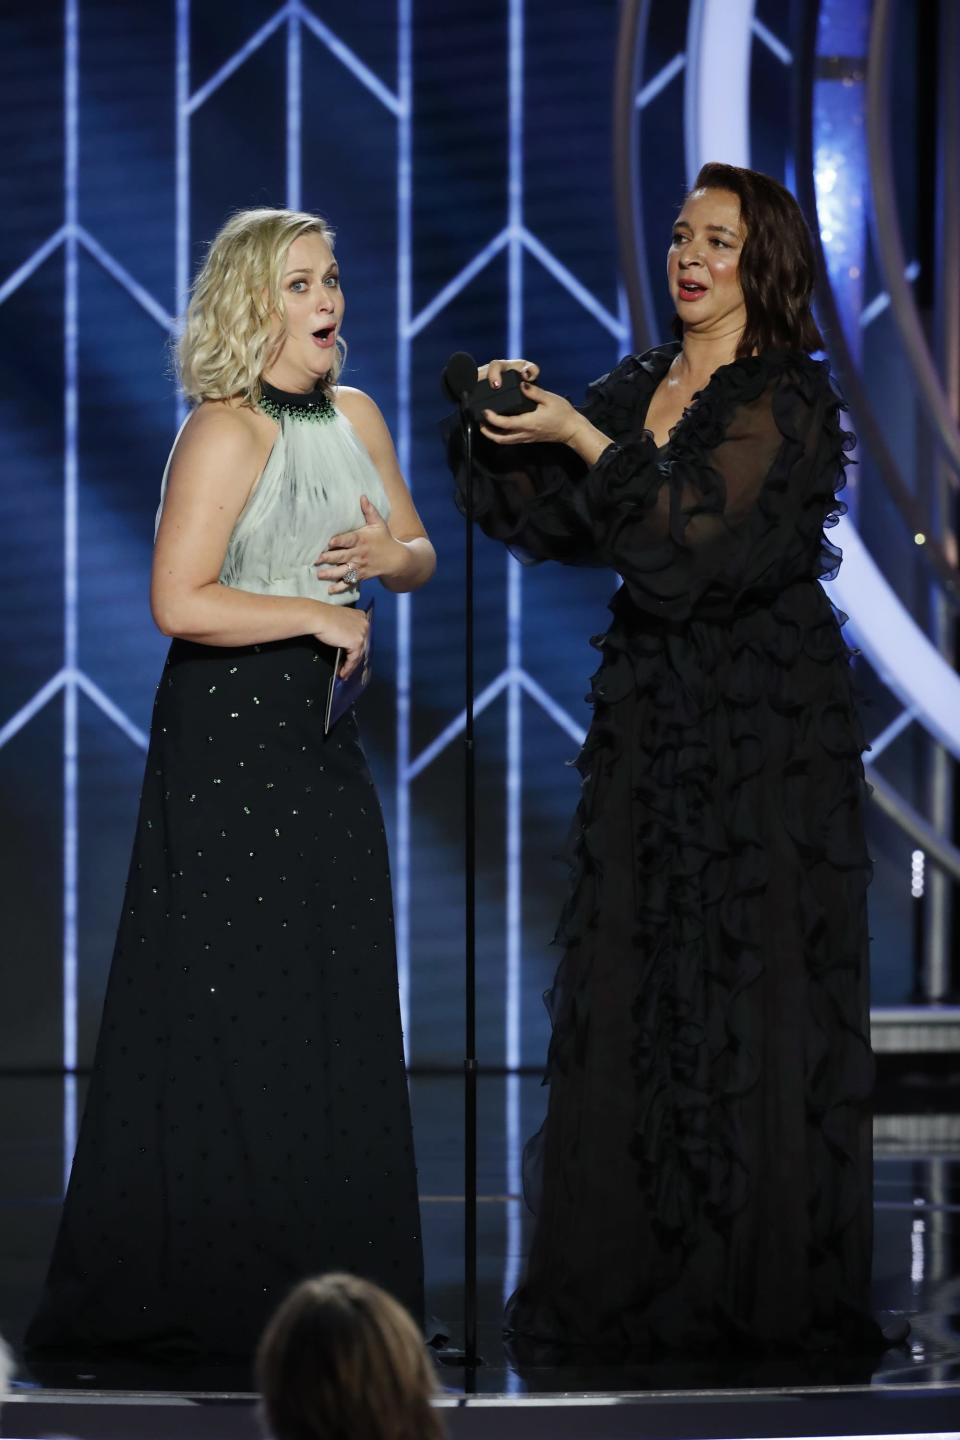 Maya Rudolph pops the question to Amy Poehler at the Golden Globes. (Photo: Paul Drinkwater/NBC Universal/Handout via Reuters)